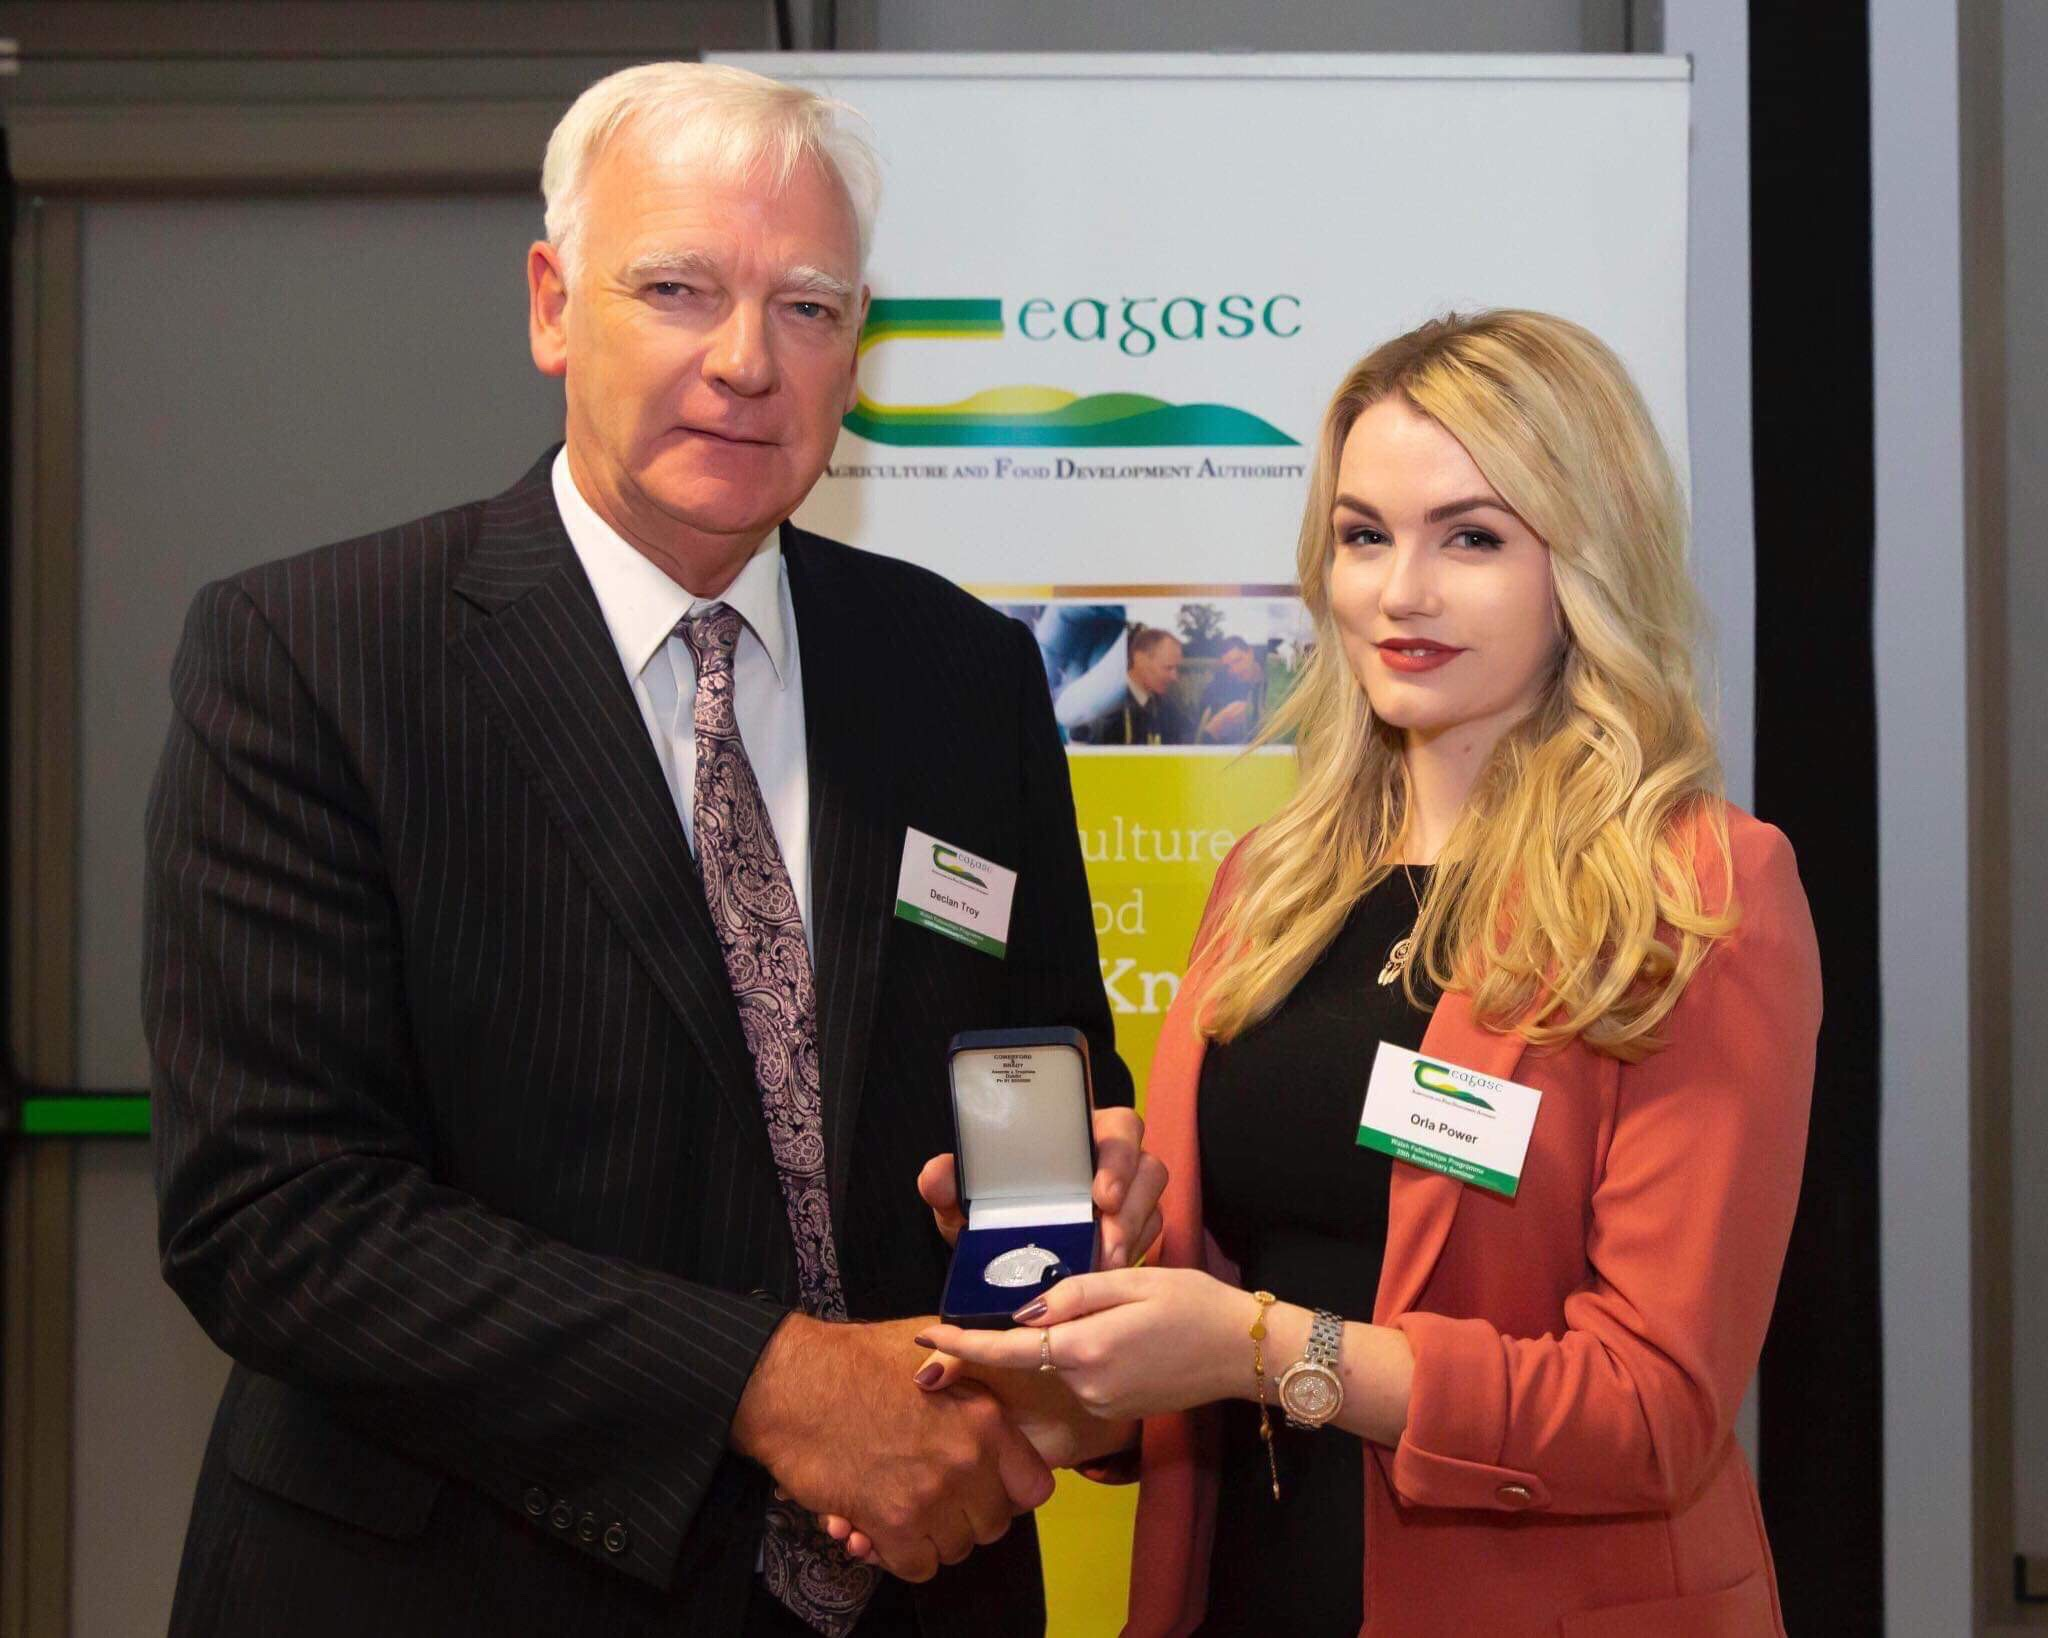 PhD Food Science candidate wins IFSTI medal for Best Food Science and Technology Presentation